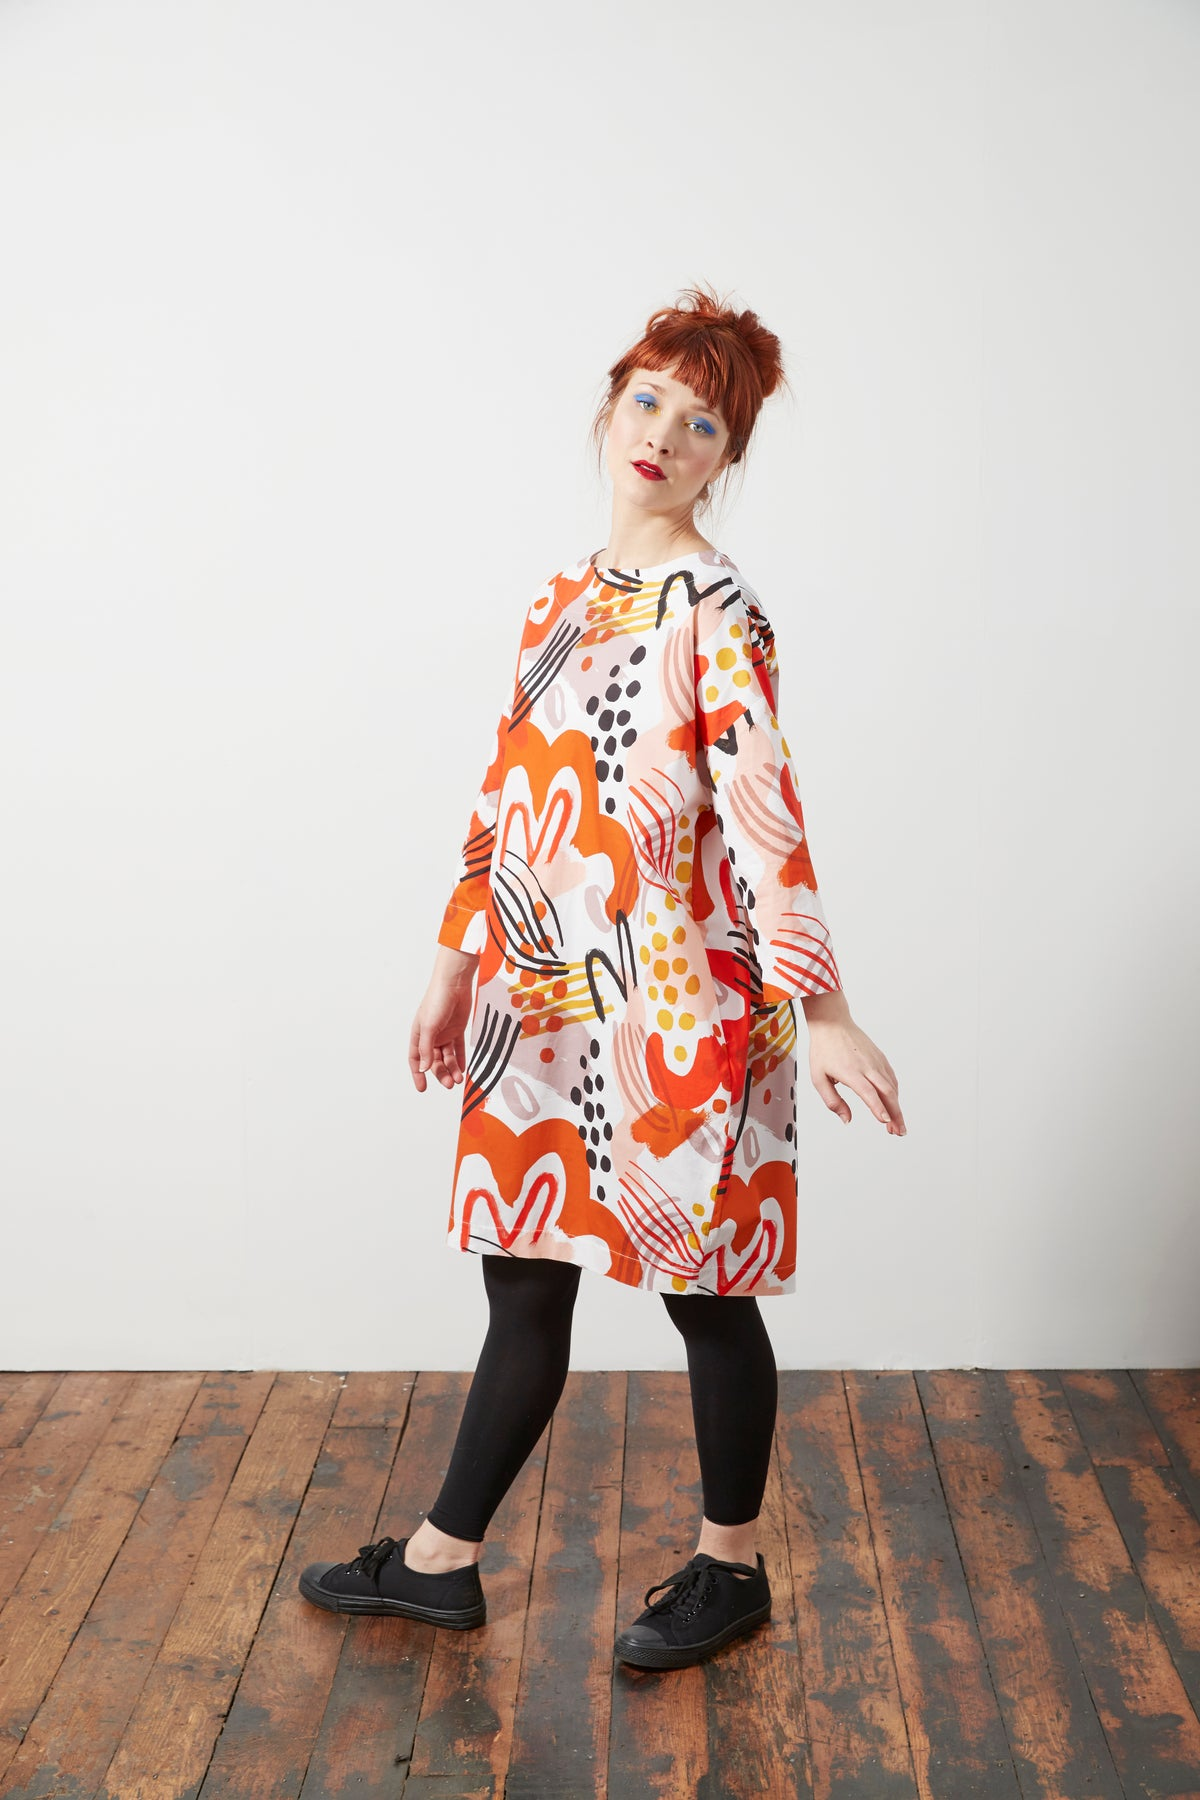 Image of Cocoon Dress - limited Edition Print